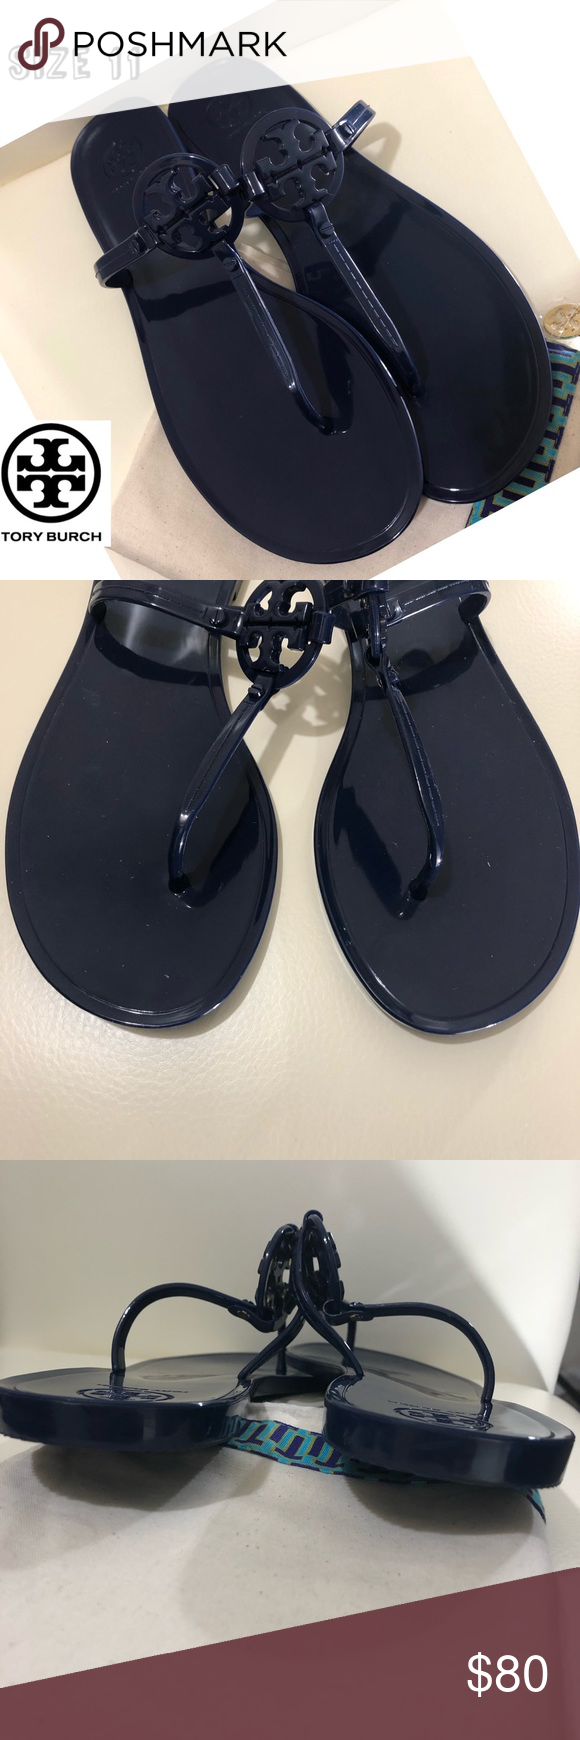 0af2d49b5 TORY BURCH Mini Miller jelly thong sandals BRAND NEW Tory Burch Jelly thong  sandal with Tory logo on top navy color